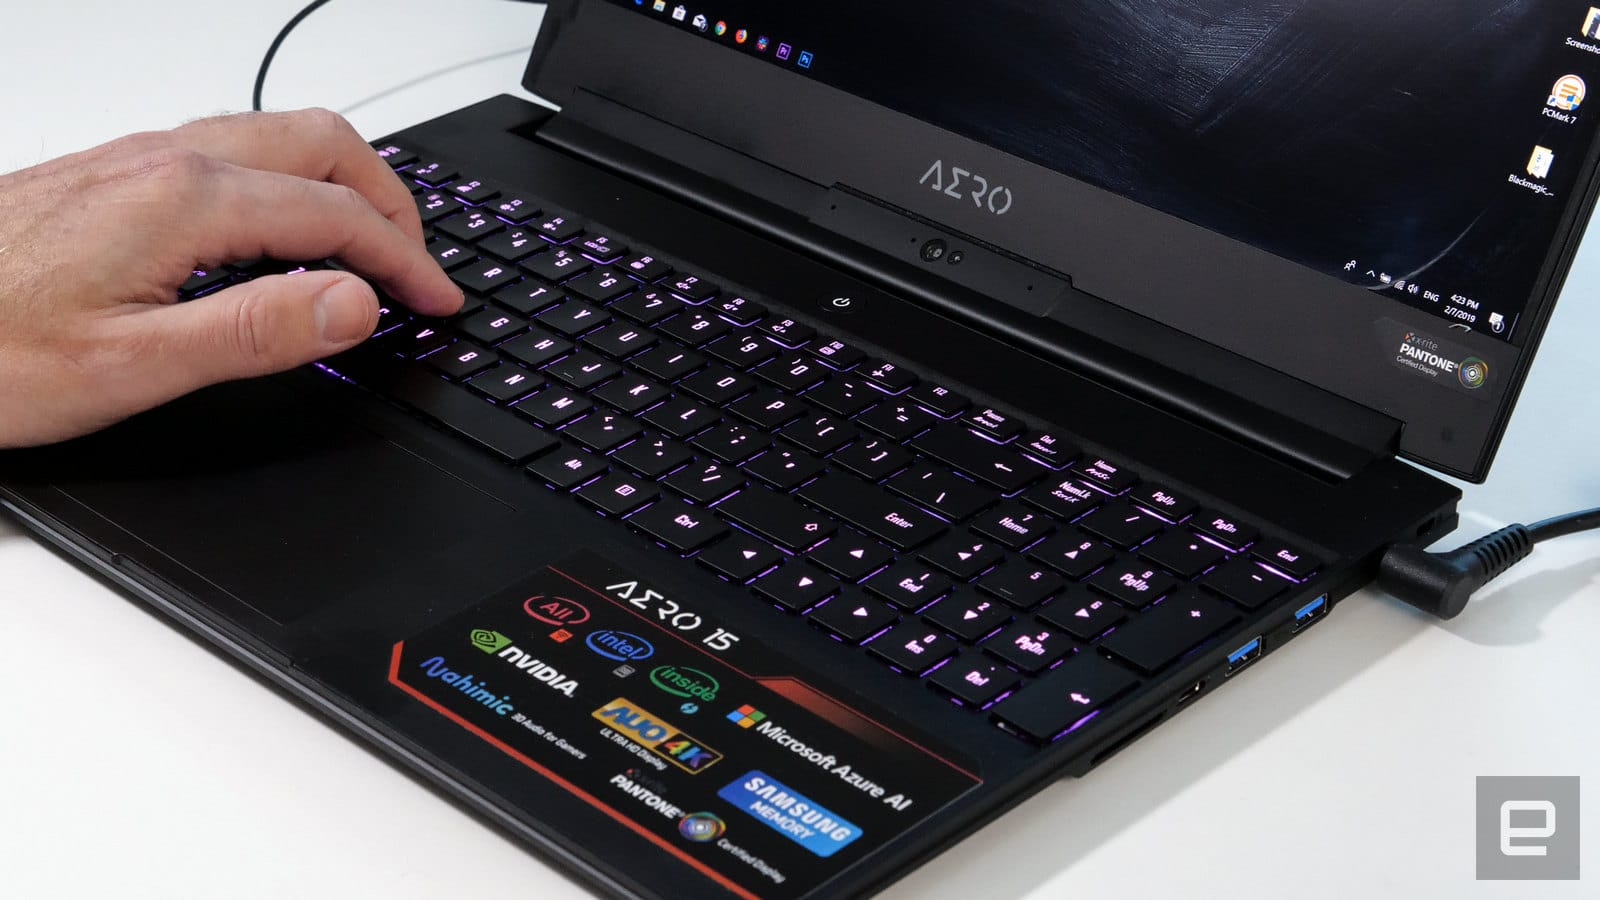 Gigabyte Aero 15 Y9 review: RTX 2080 performance, at a price